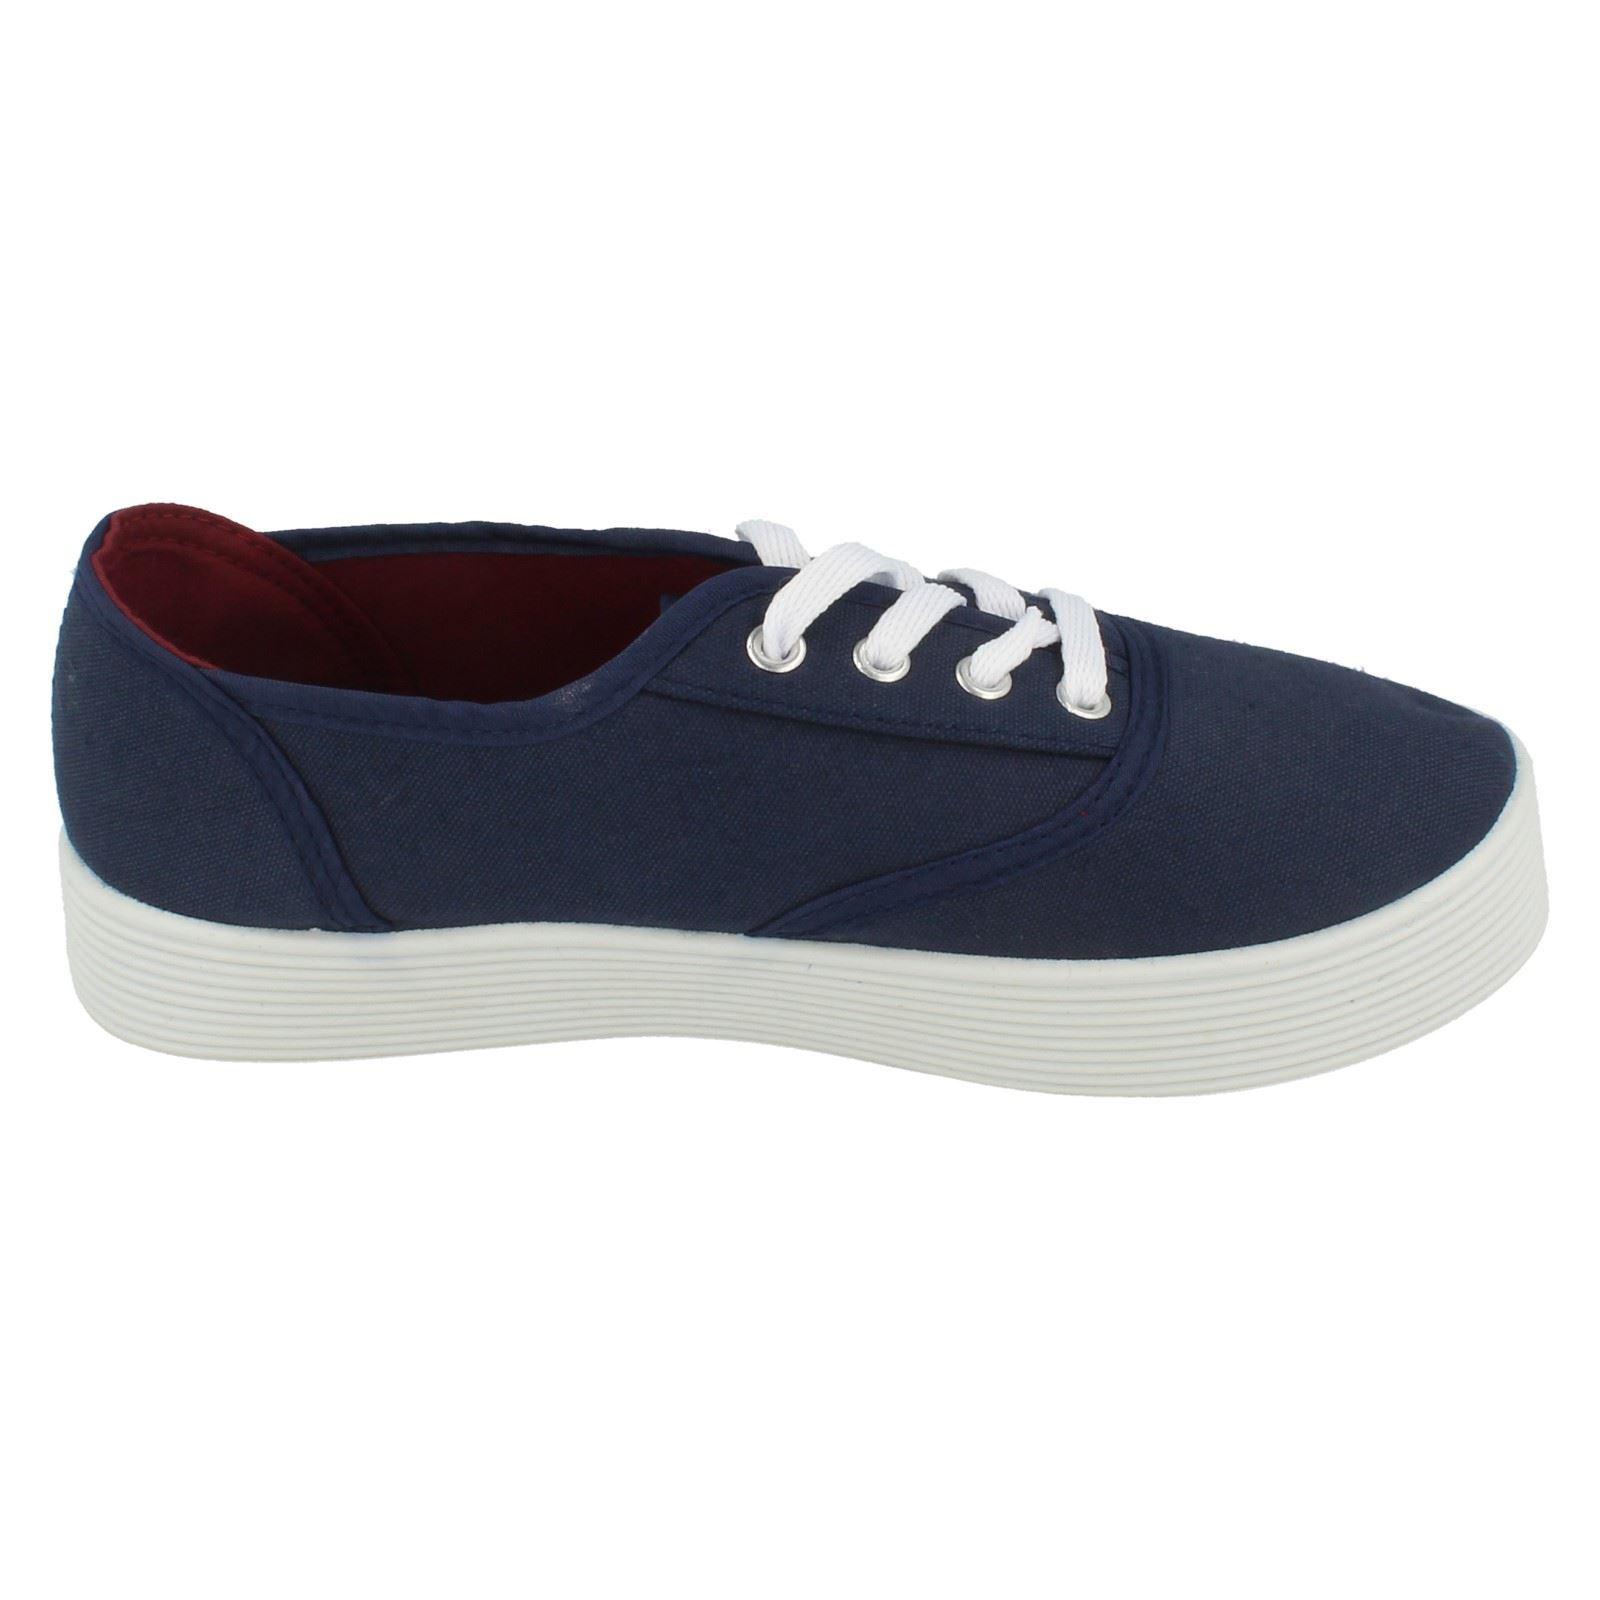 Girls Spot On Lace Up Canvas Shoes - Label X0007 ~ N